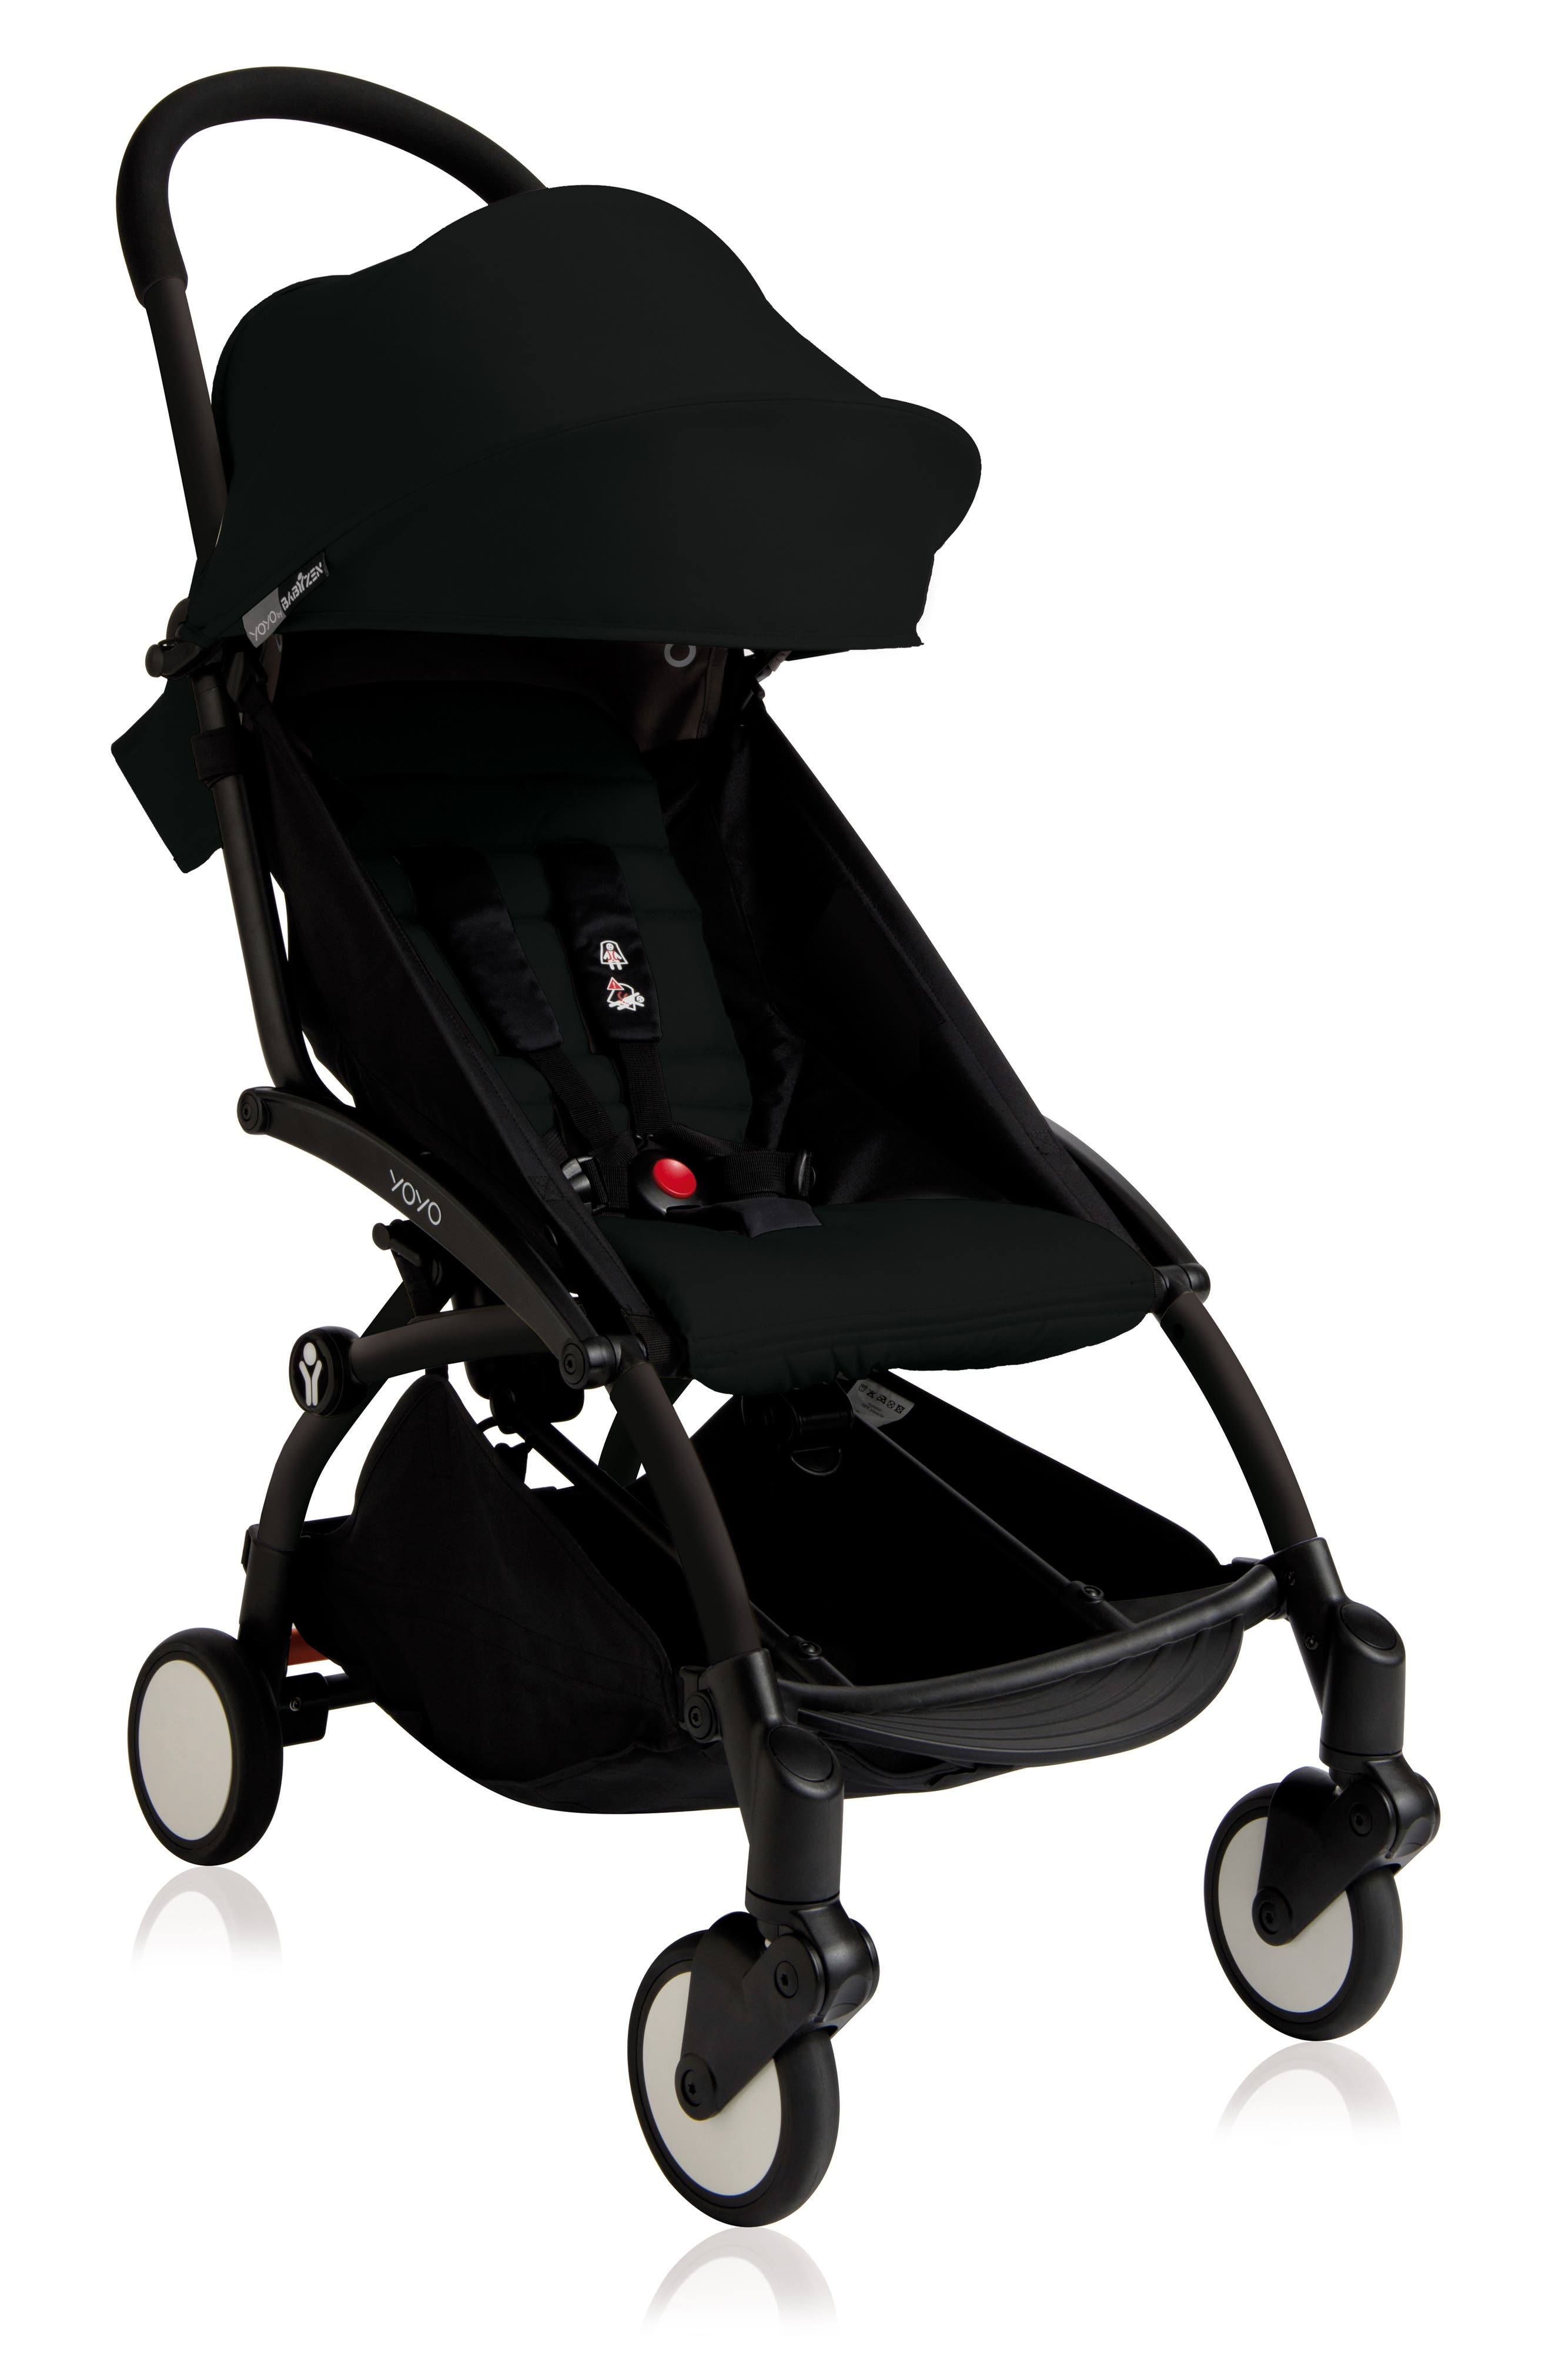 BABYZEN YOYO+ Complete Stroller with Toddler/Little Kid Color Pack Fabric Set,                             Main thumbnail 1, color,                             BLACK/ BLACK